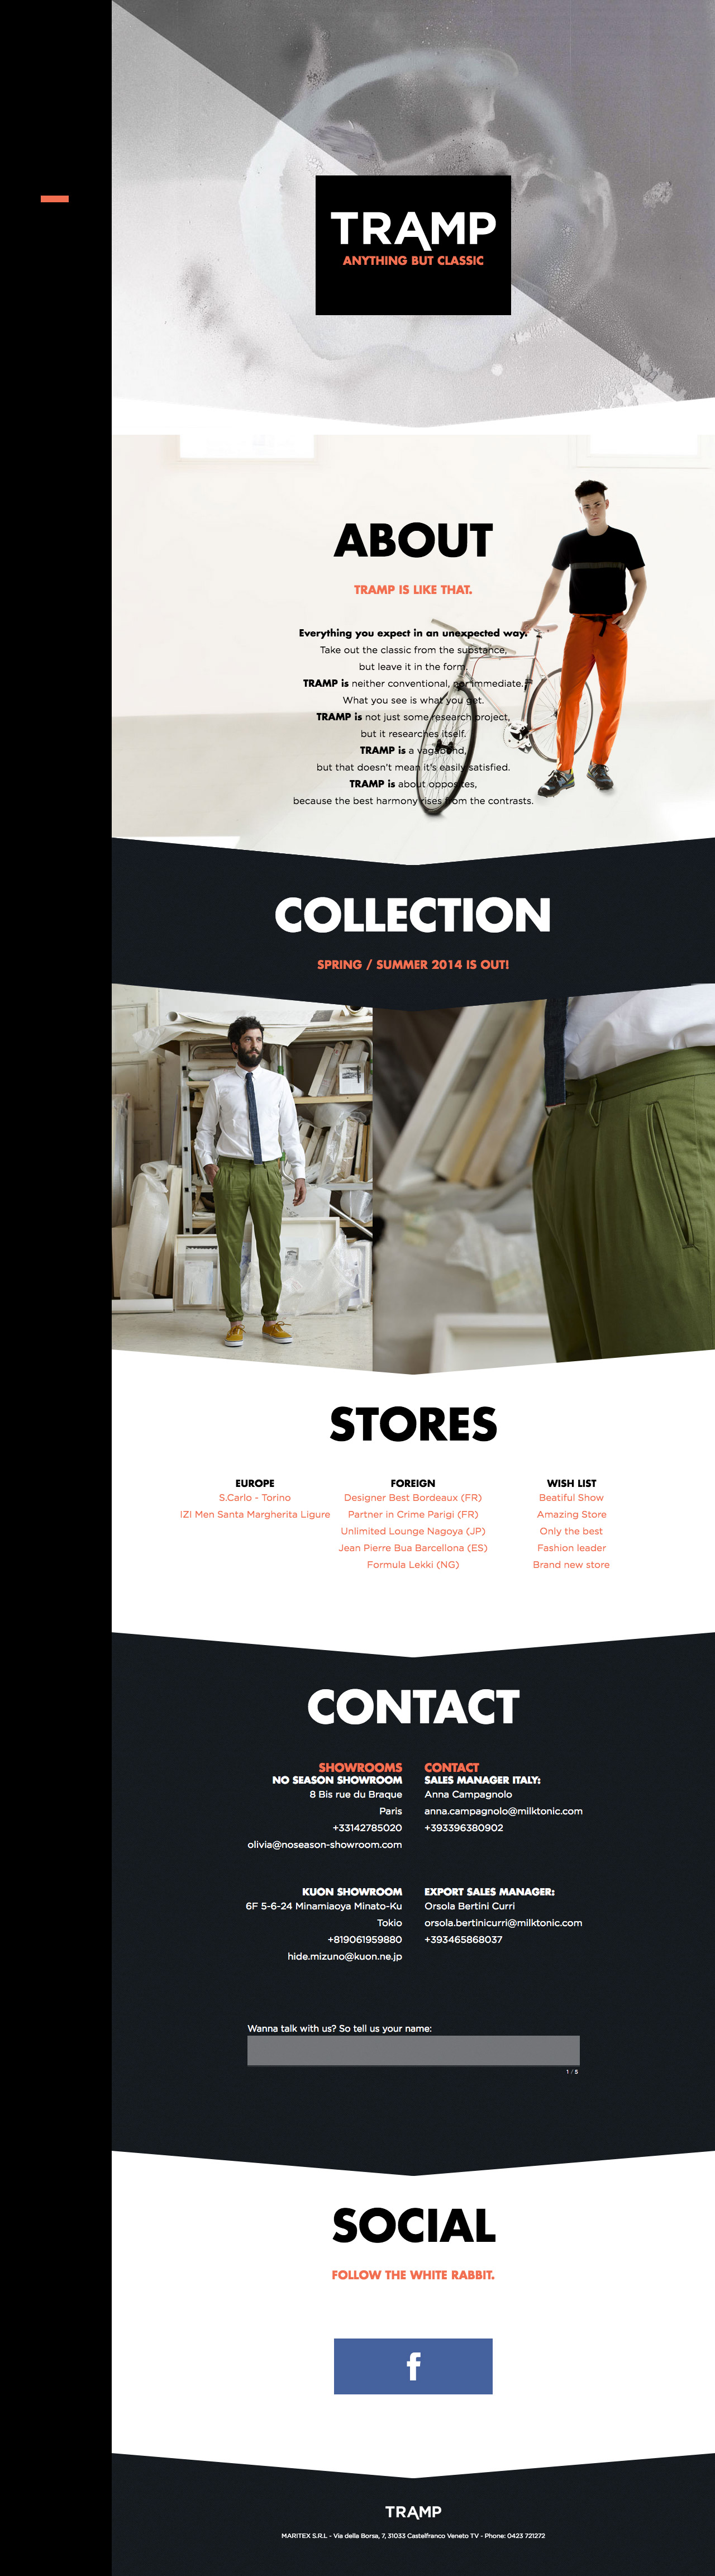 Tramp Trousers Website Screenshot